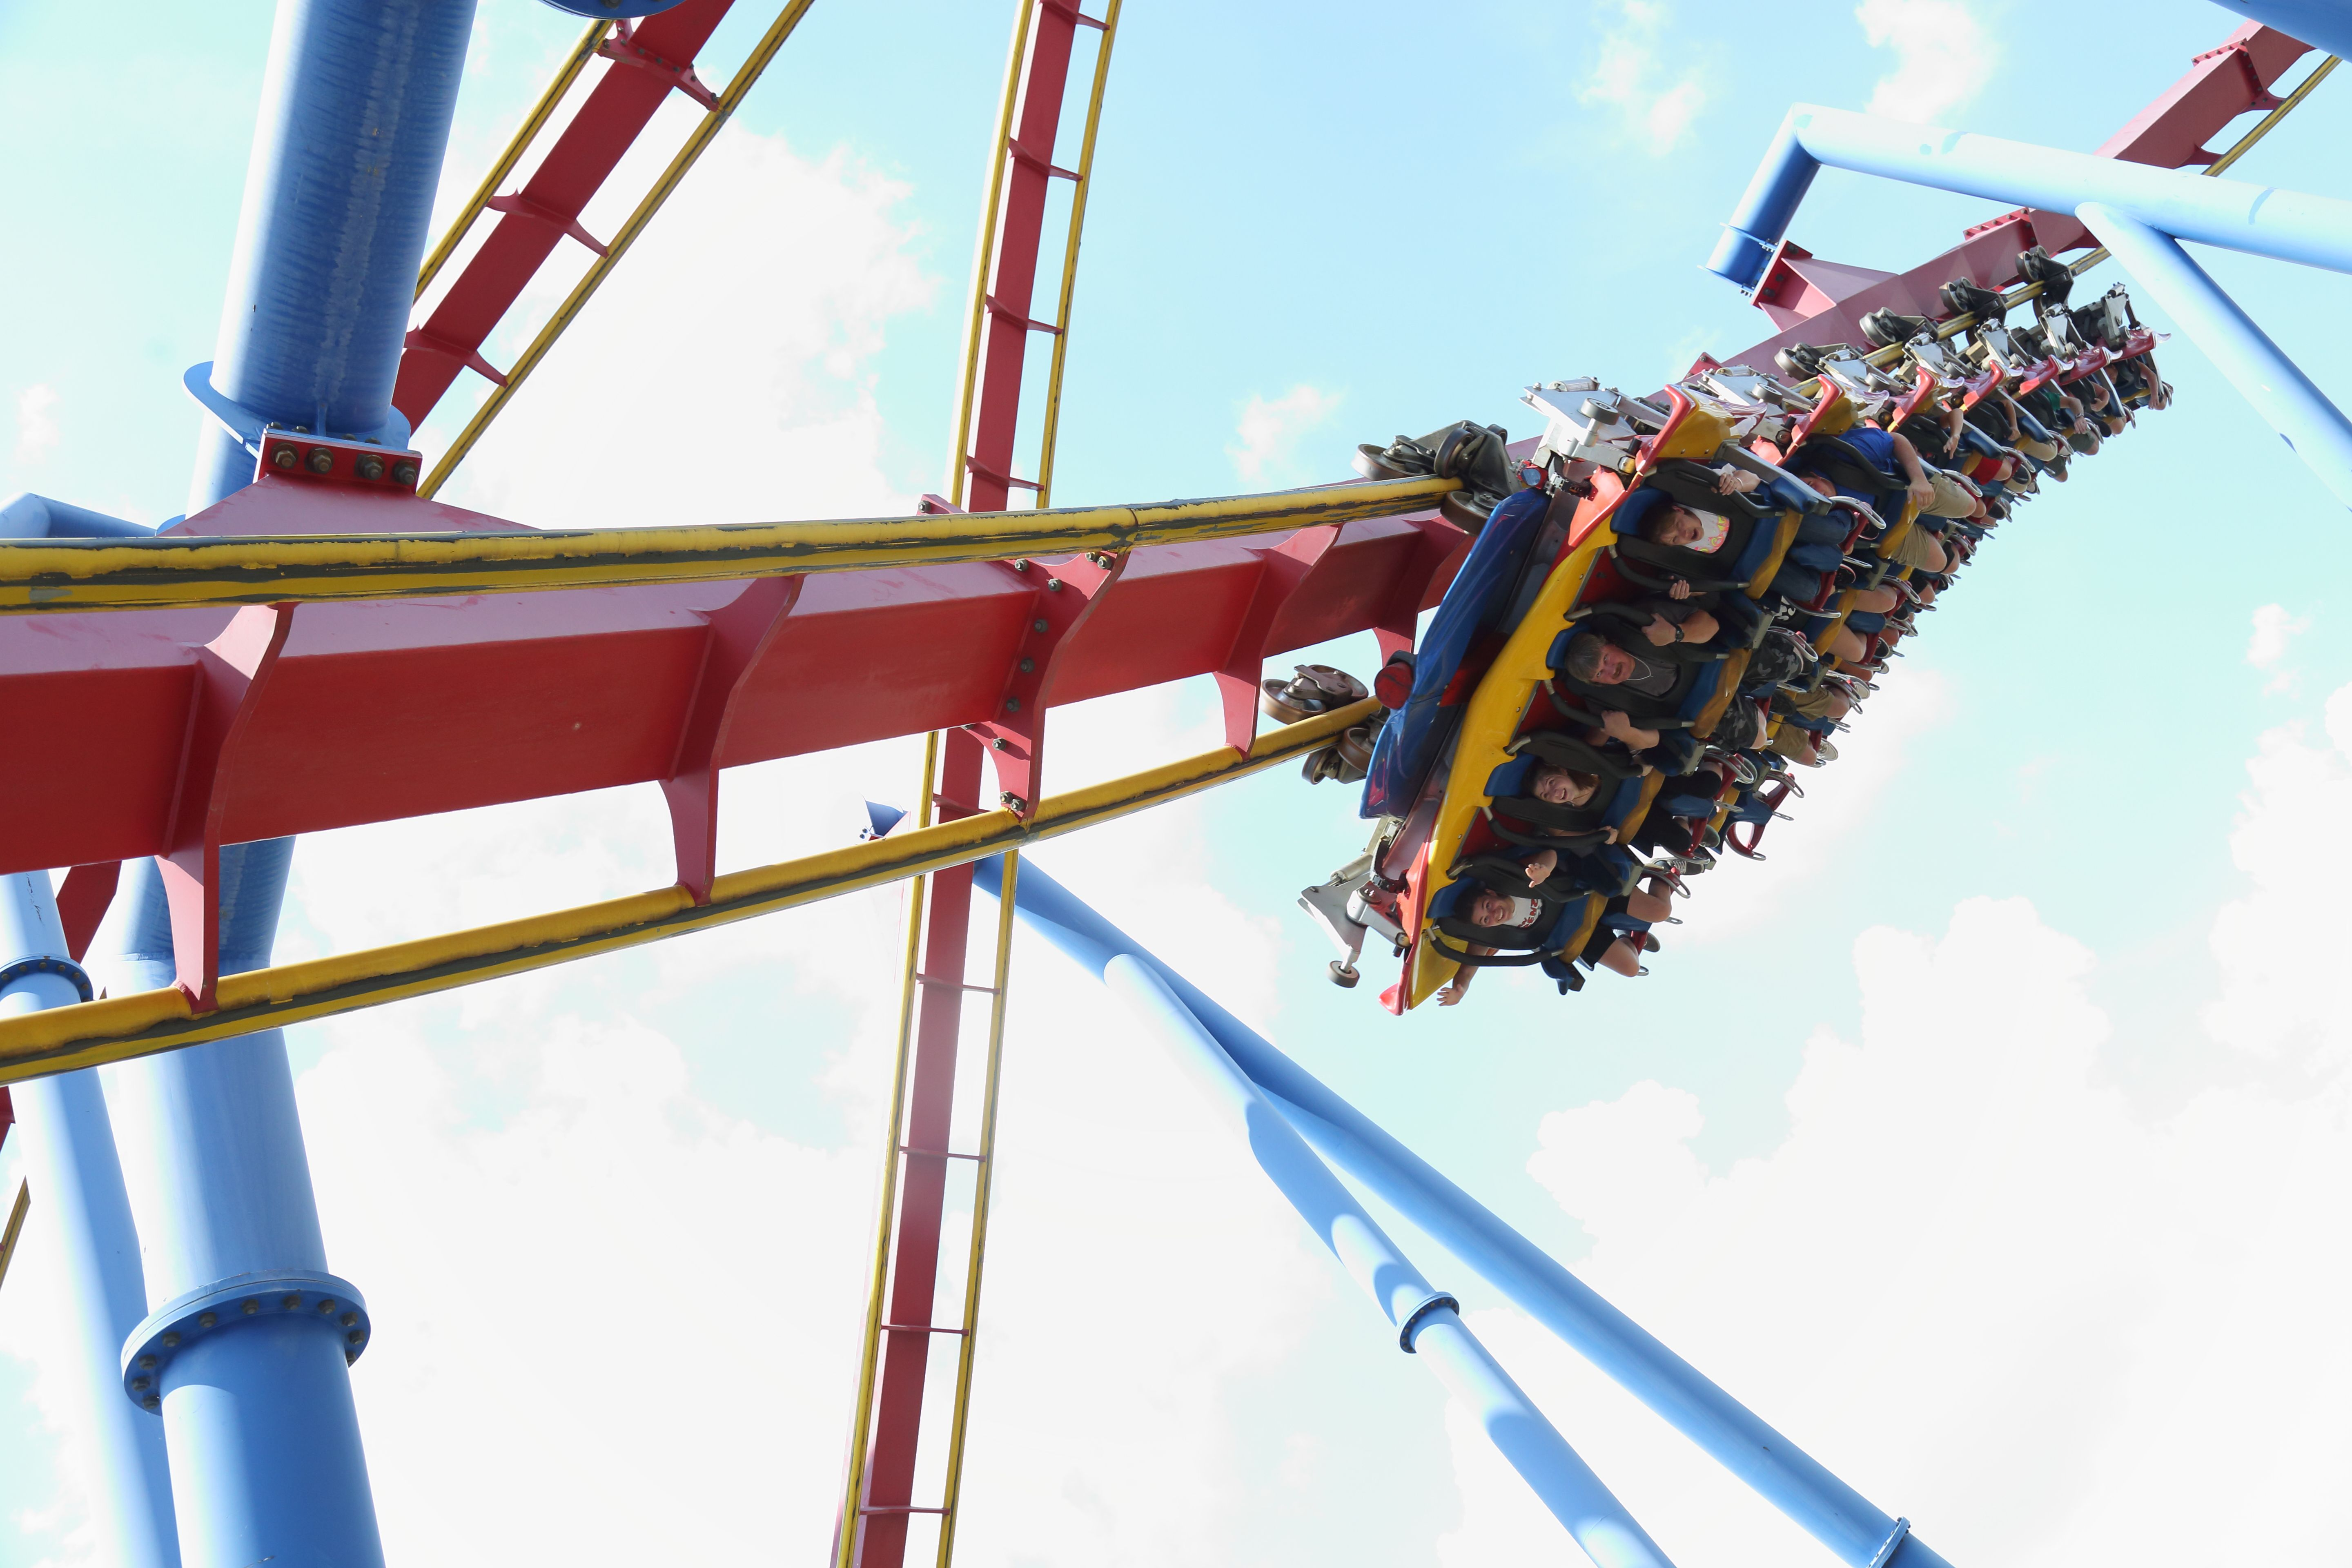 Superman Ultimate Flight At Six Flags Over Georgia Six Flags Thrill Ride Riding